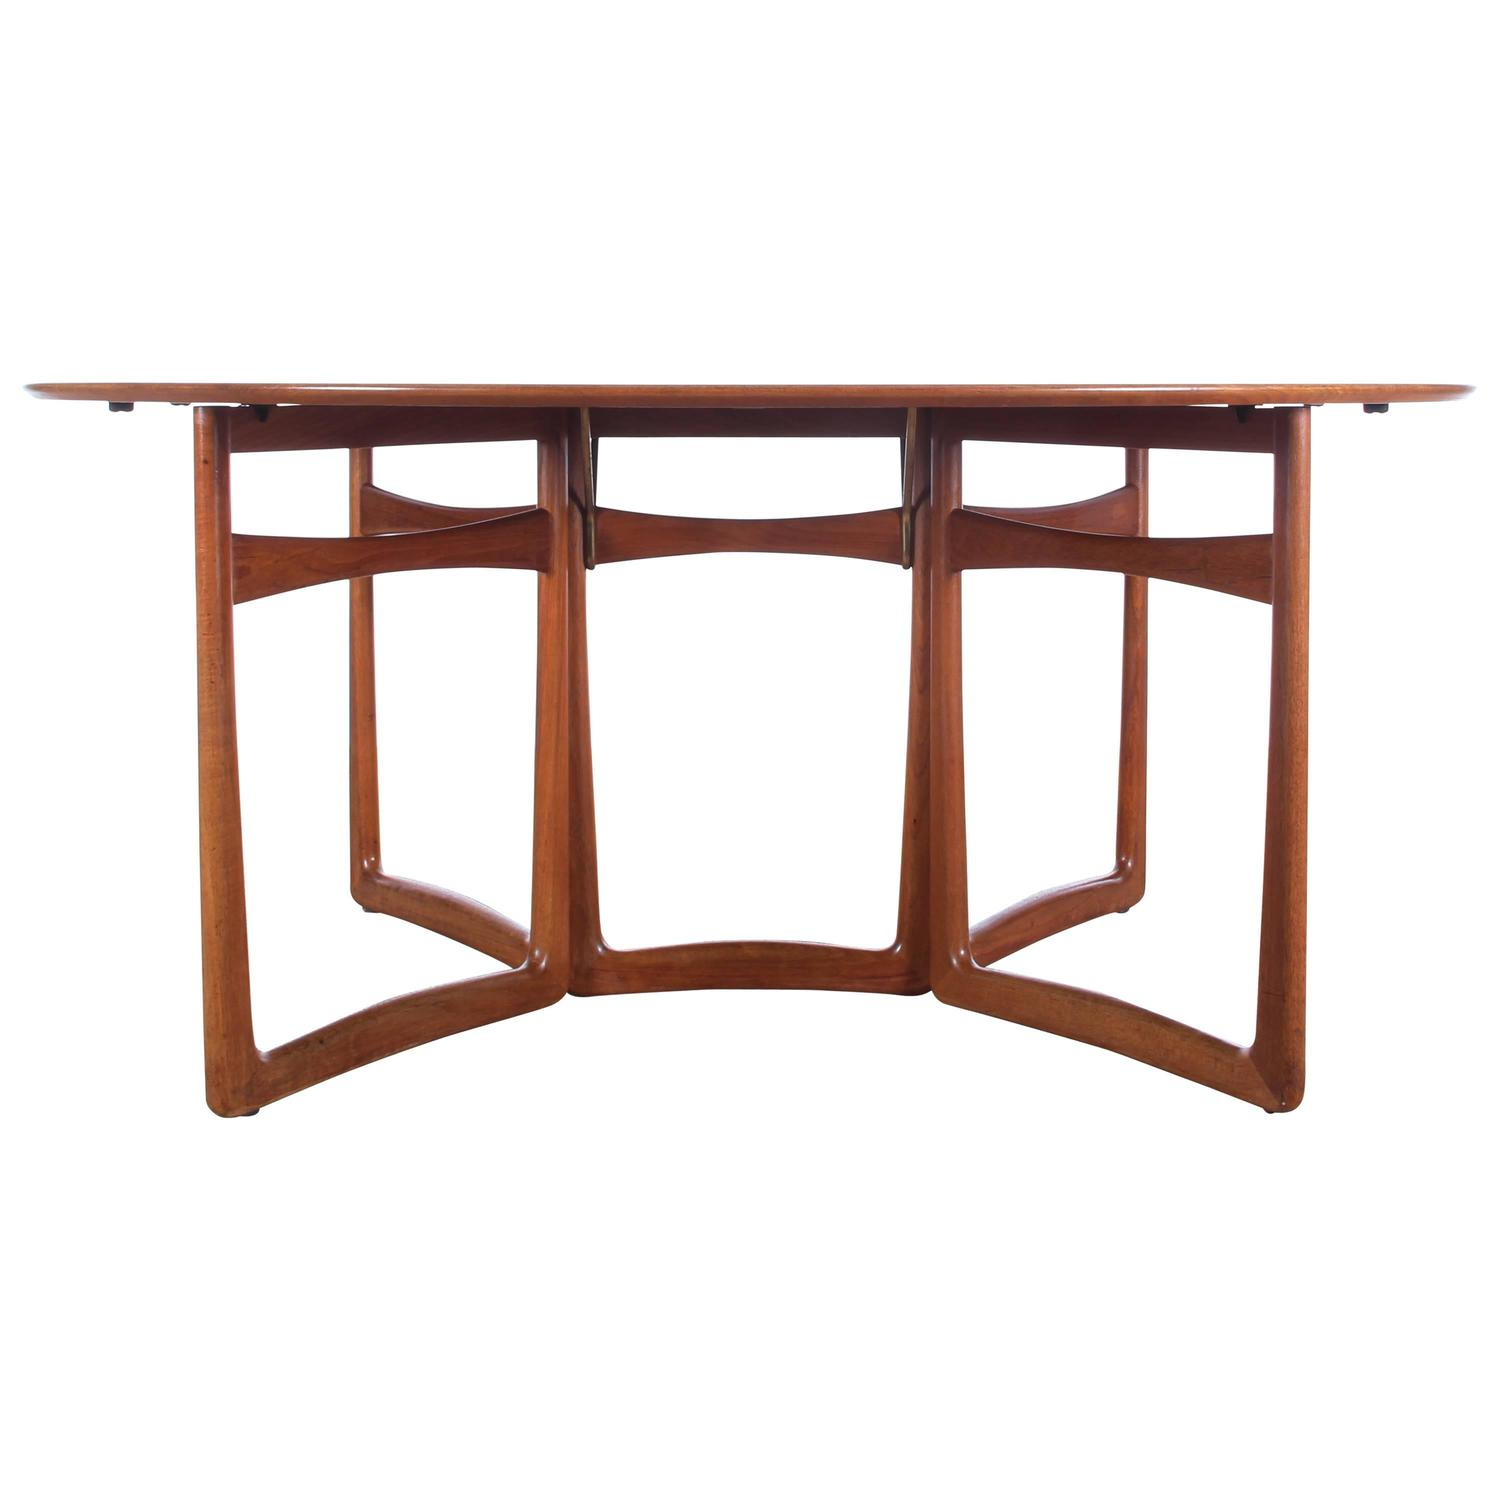 Mid century modern teak folding dining table by hvidt and m 248 lgaard